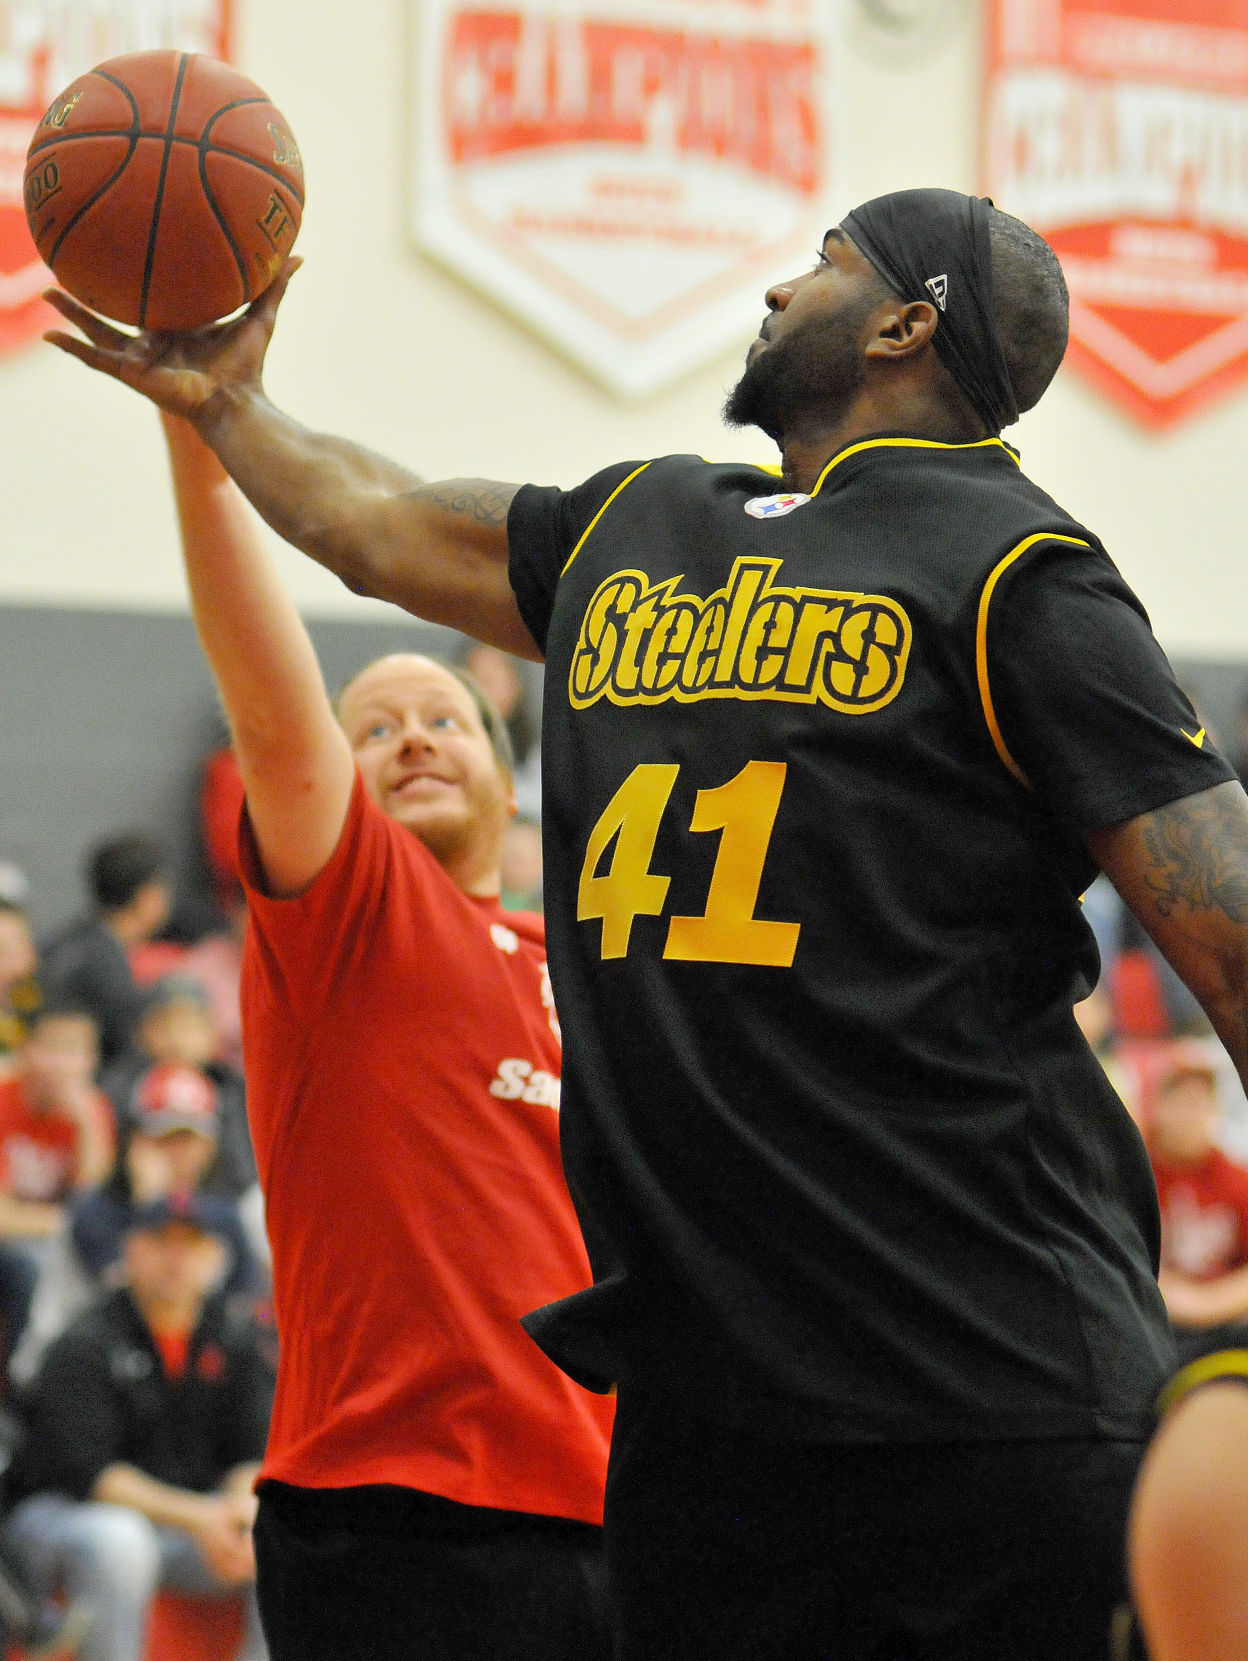 Saltsburg faculty takes on pittsburgh steelers in charity basketball jpg  1200x1597 Pittsburgh steelers basketball team 2d5d0fece